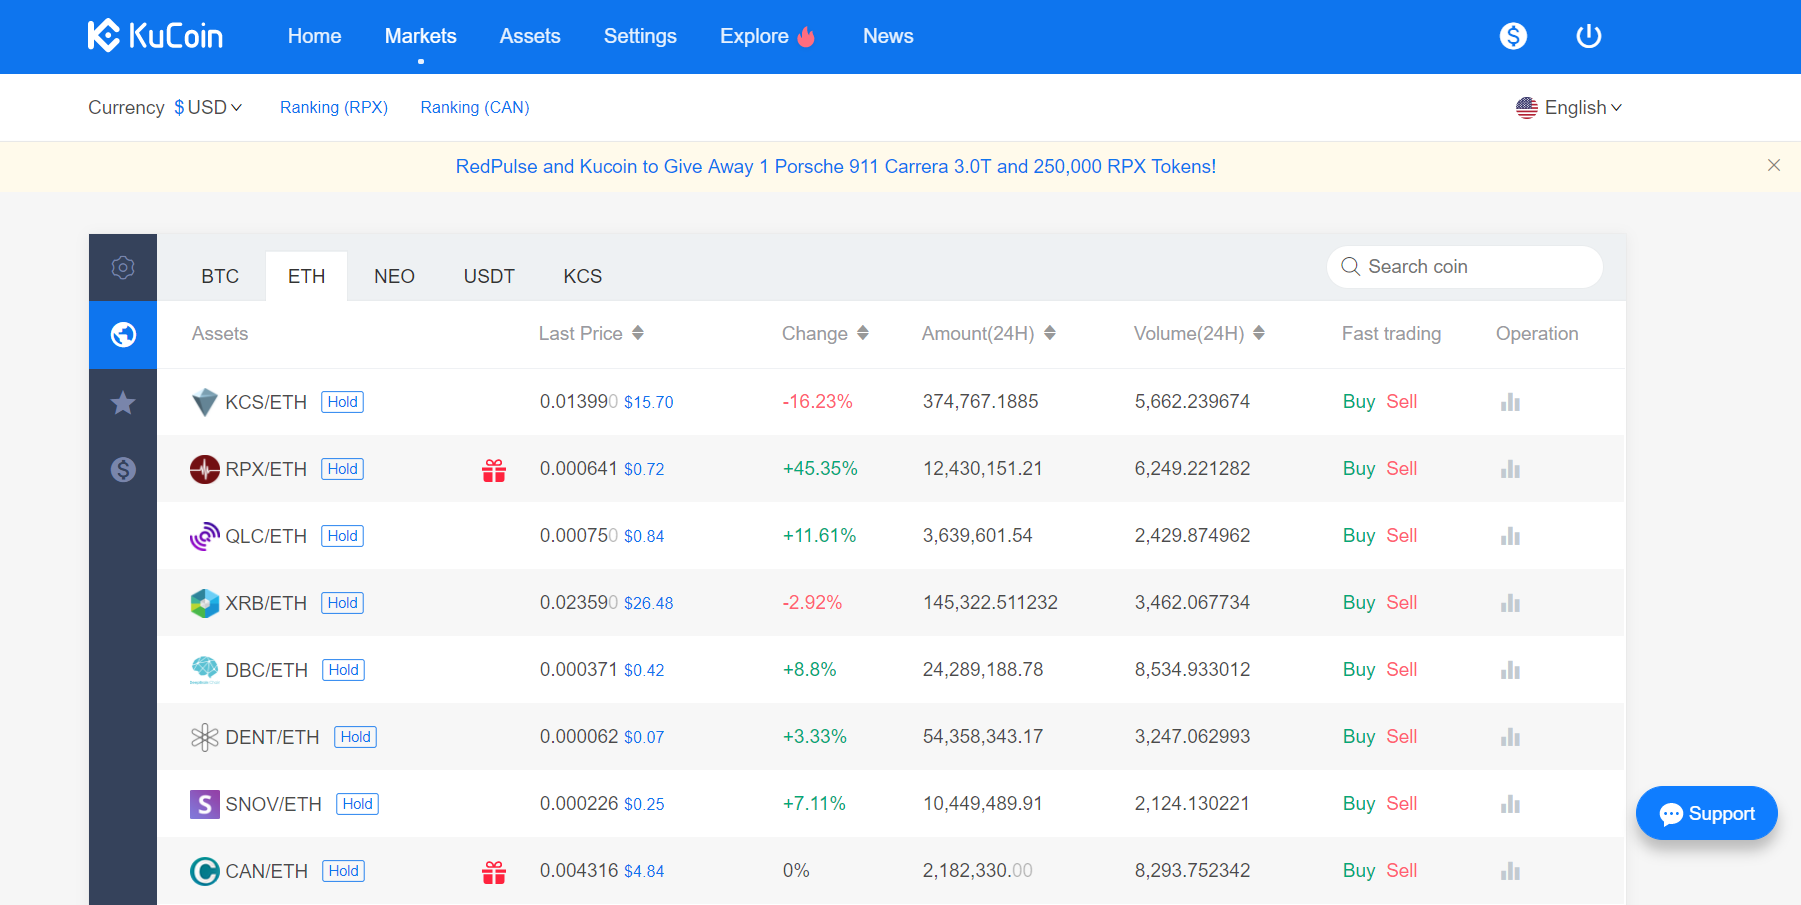 kucoin screen shot 1